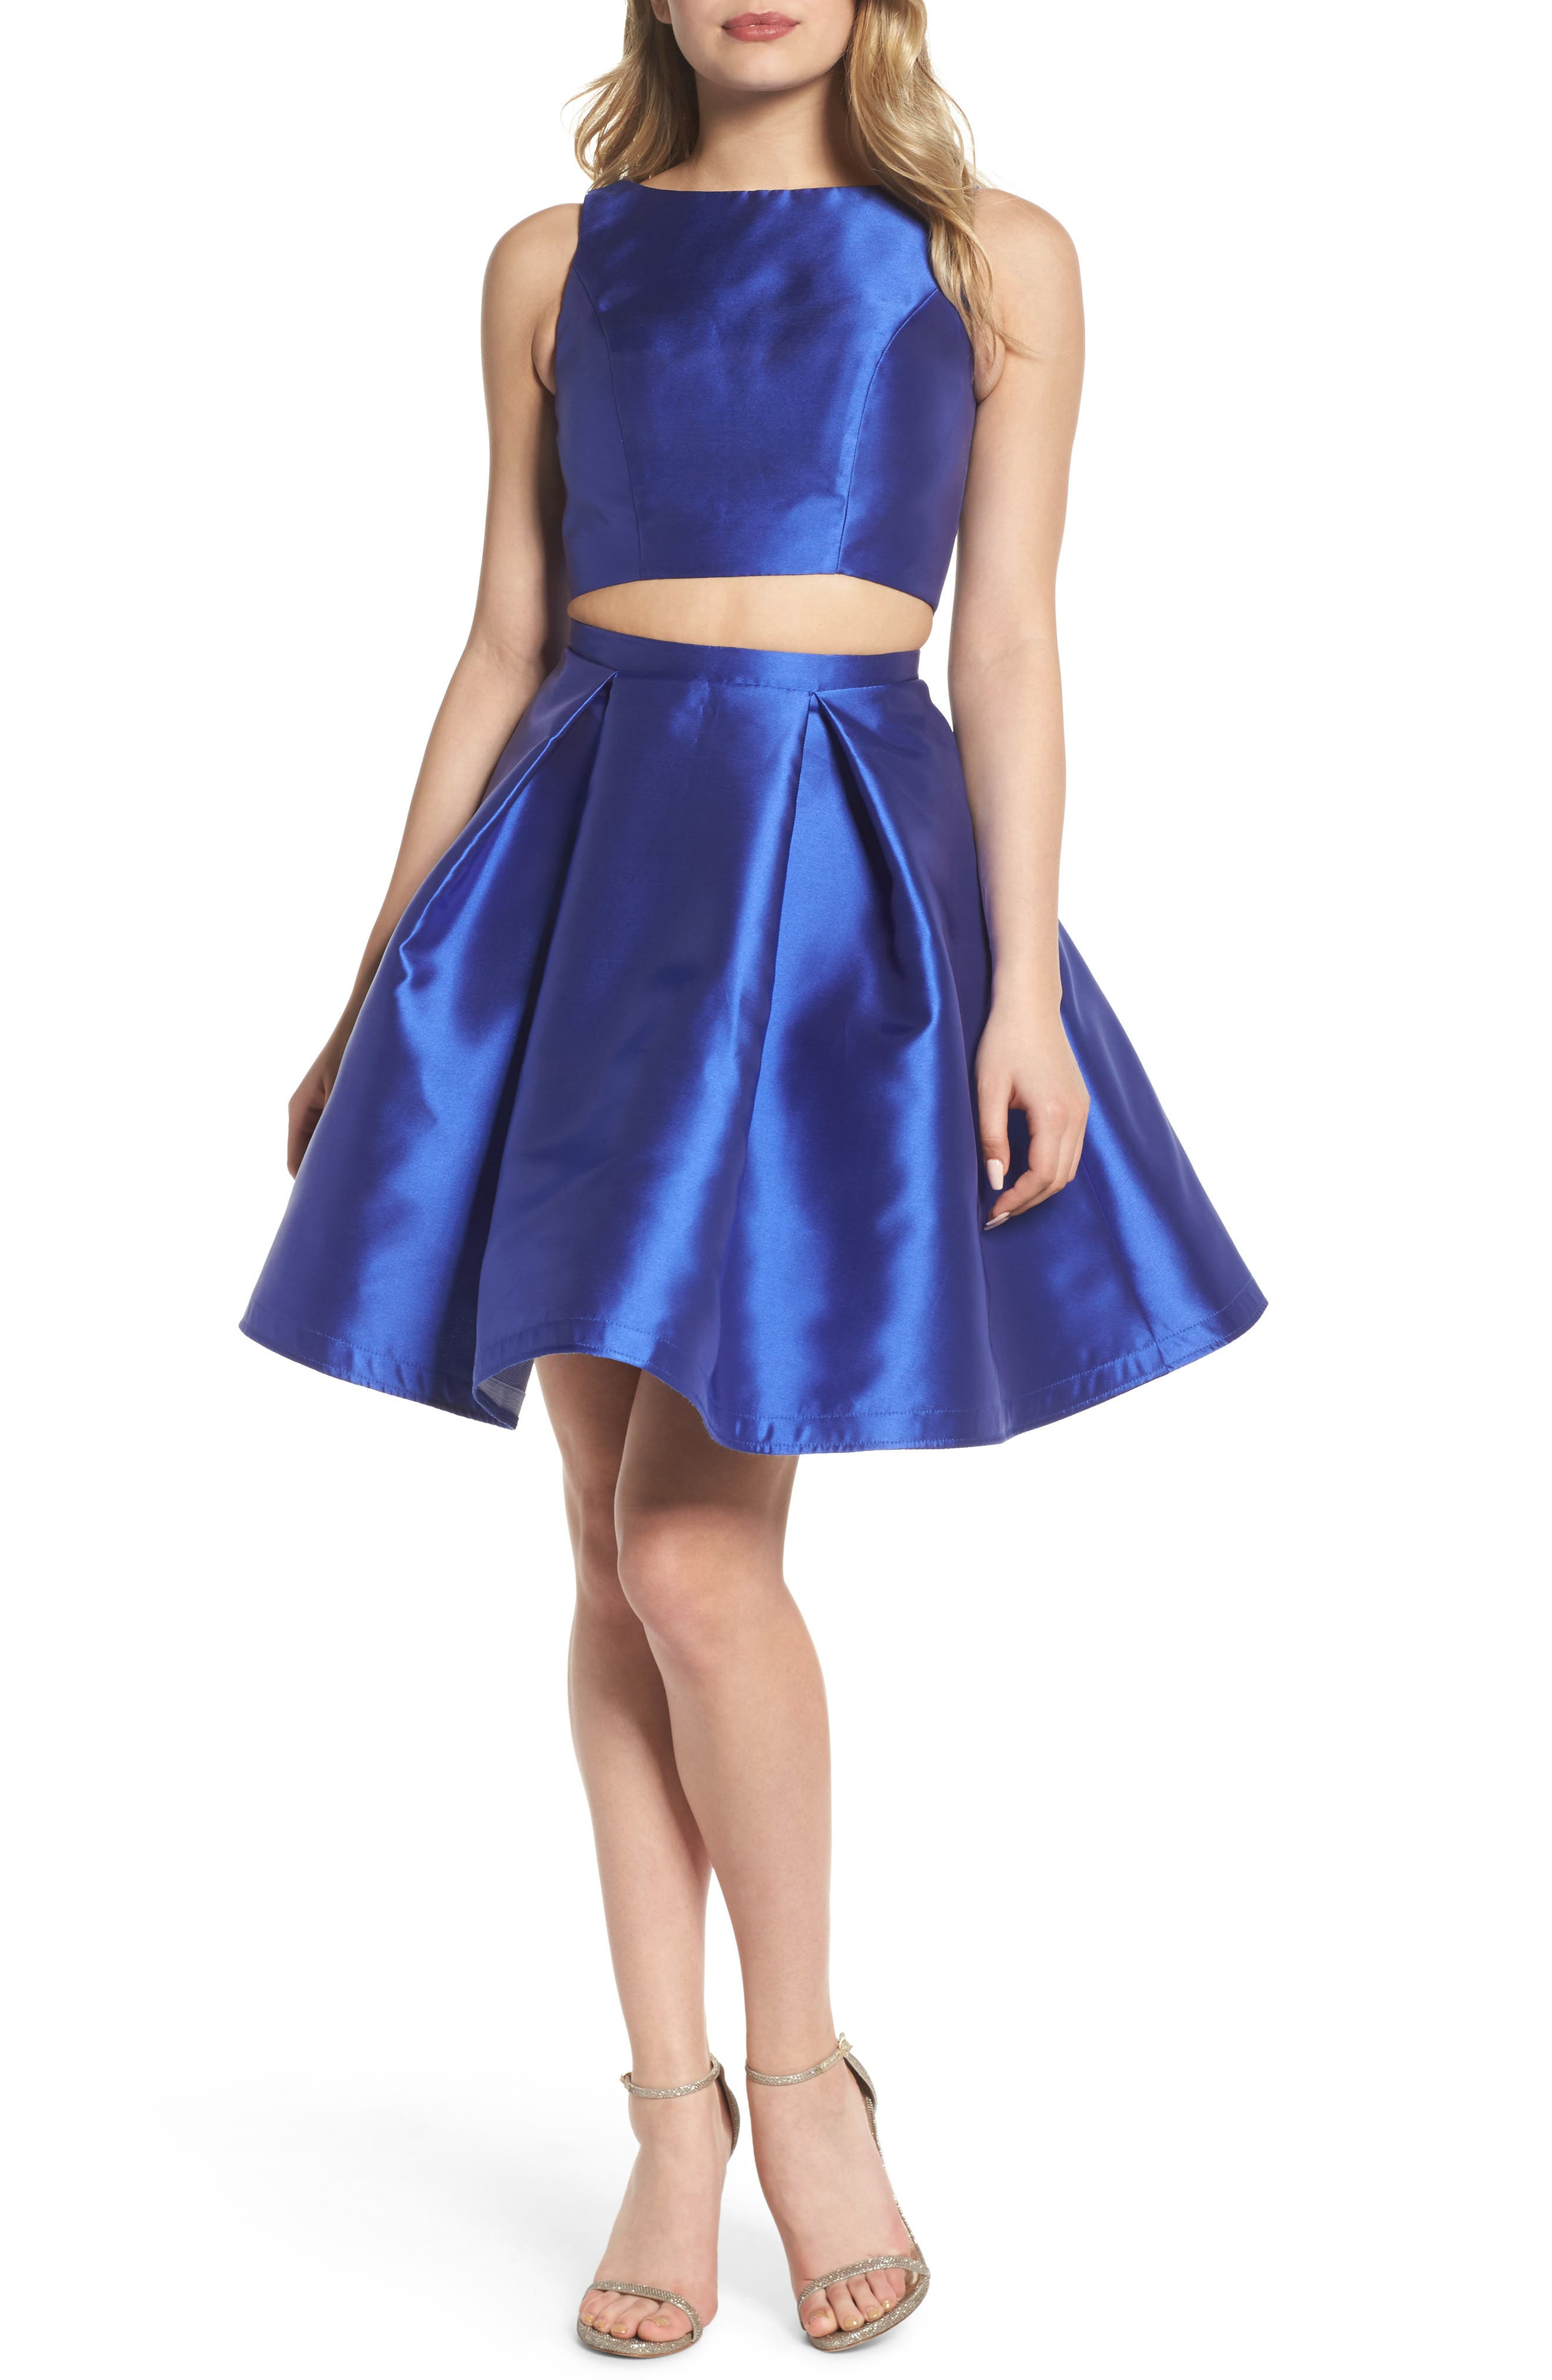 Skater Skirt Two-Piece Dress,                         Main,                         color, Sapphire